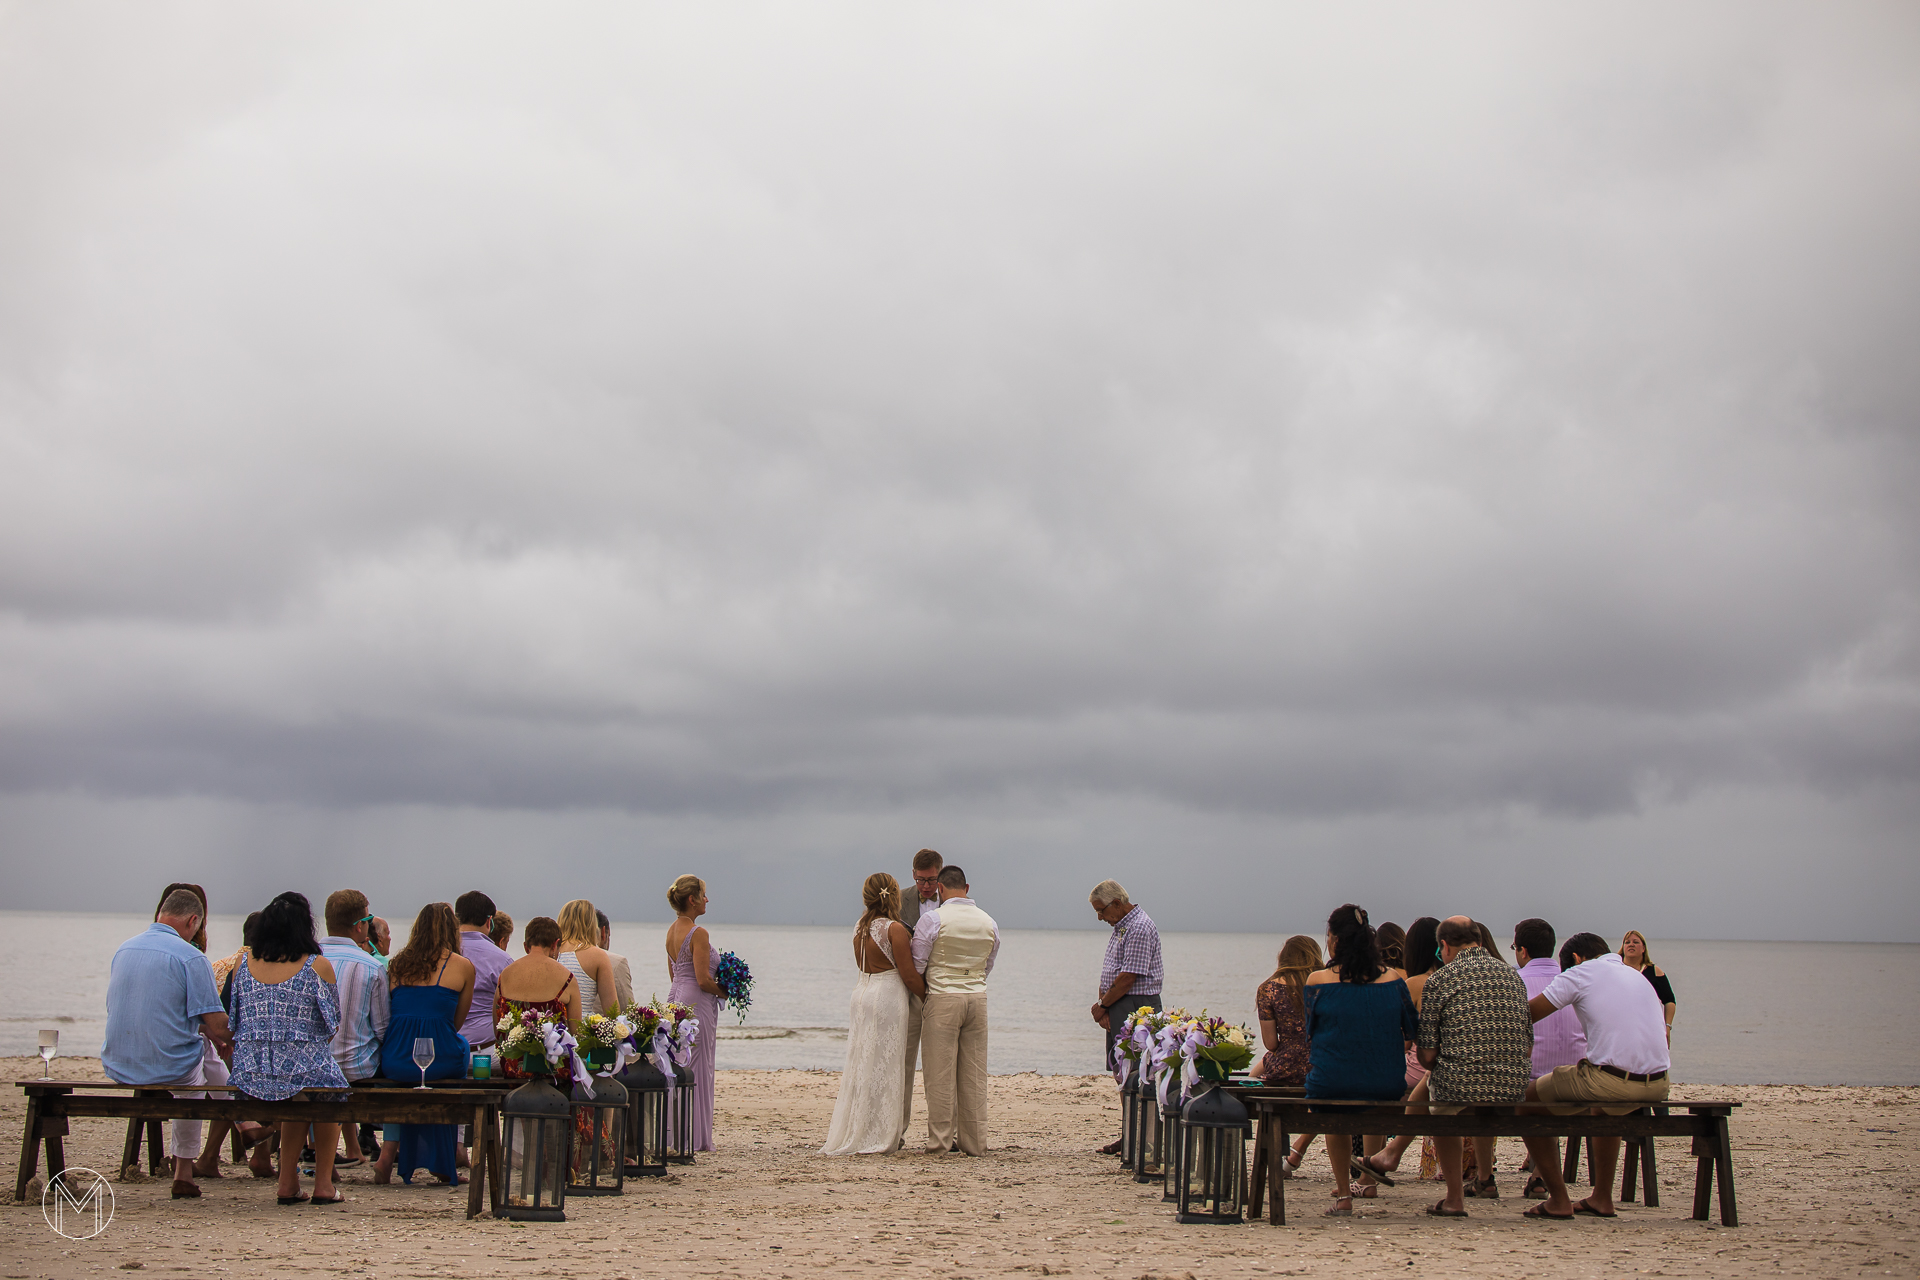 mississippi-gulf-coast-wedding-7798.jpg